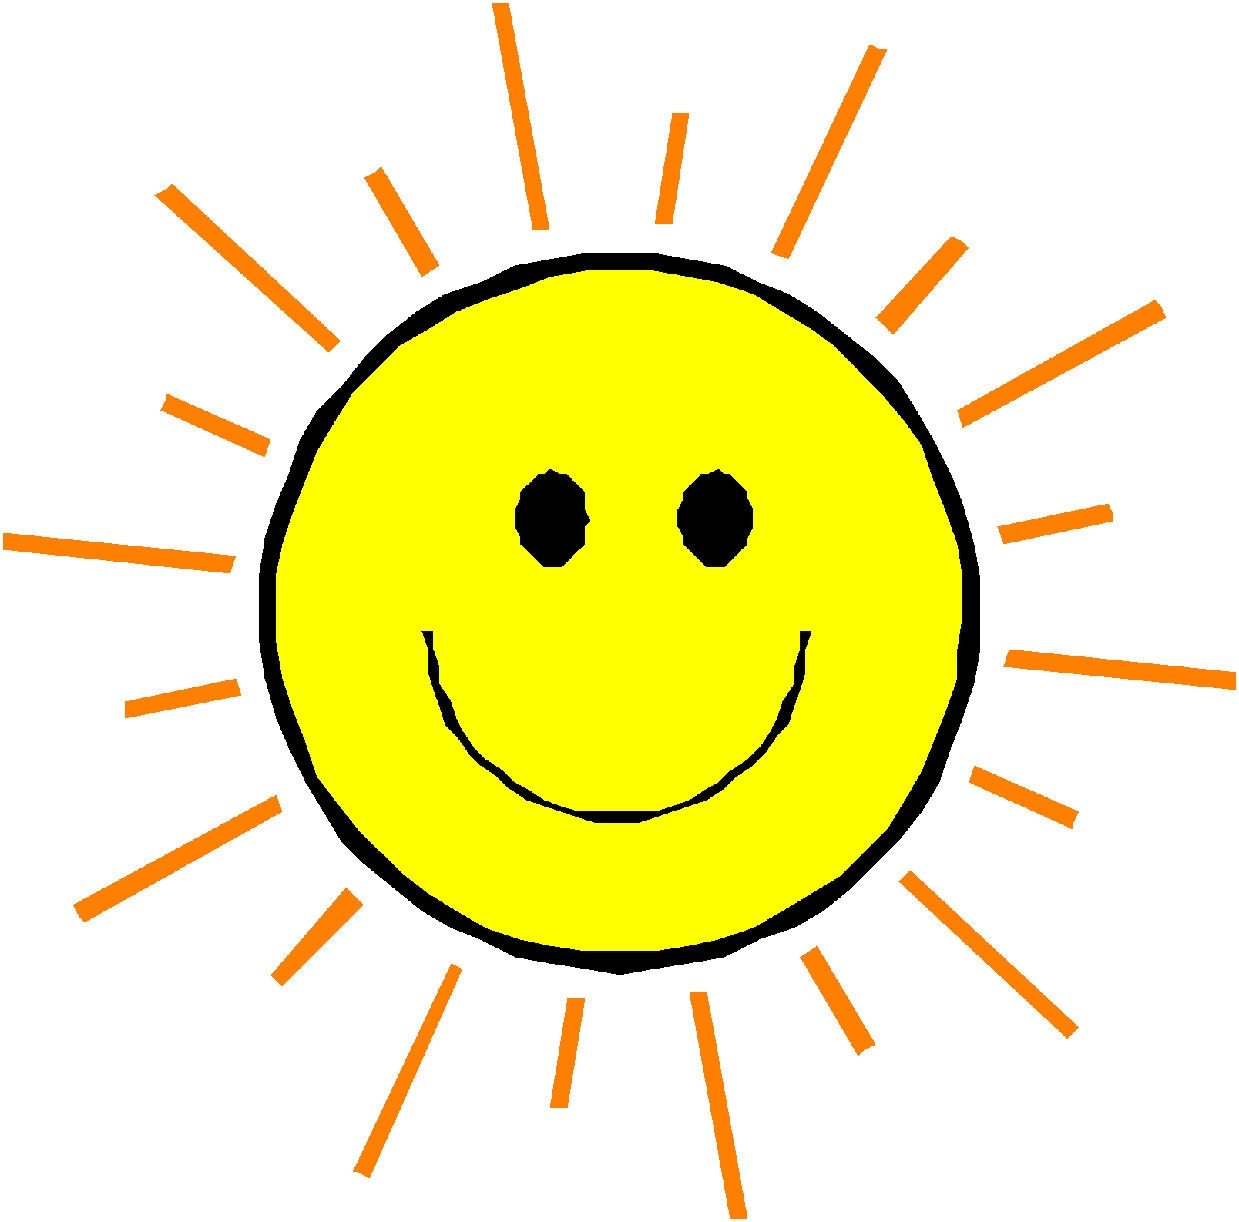 Sun with smiley face clipart image freeuse Free Smiley Sun Cliparts, Download Free Clip Art, Free Clip ... image freeuse